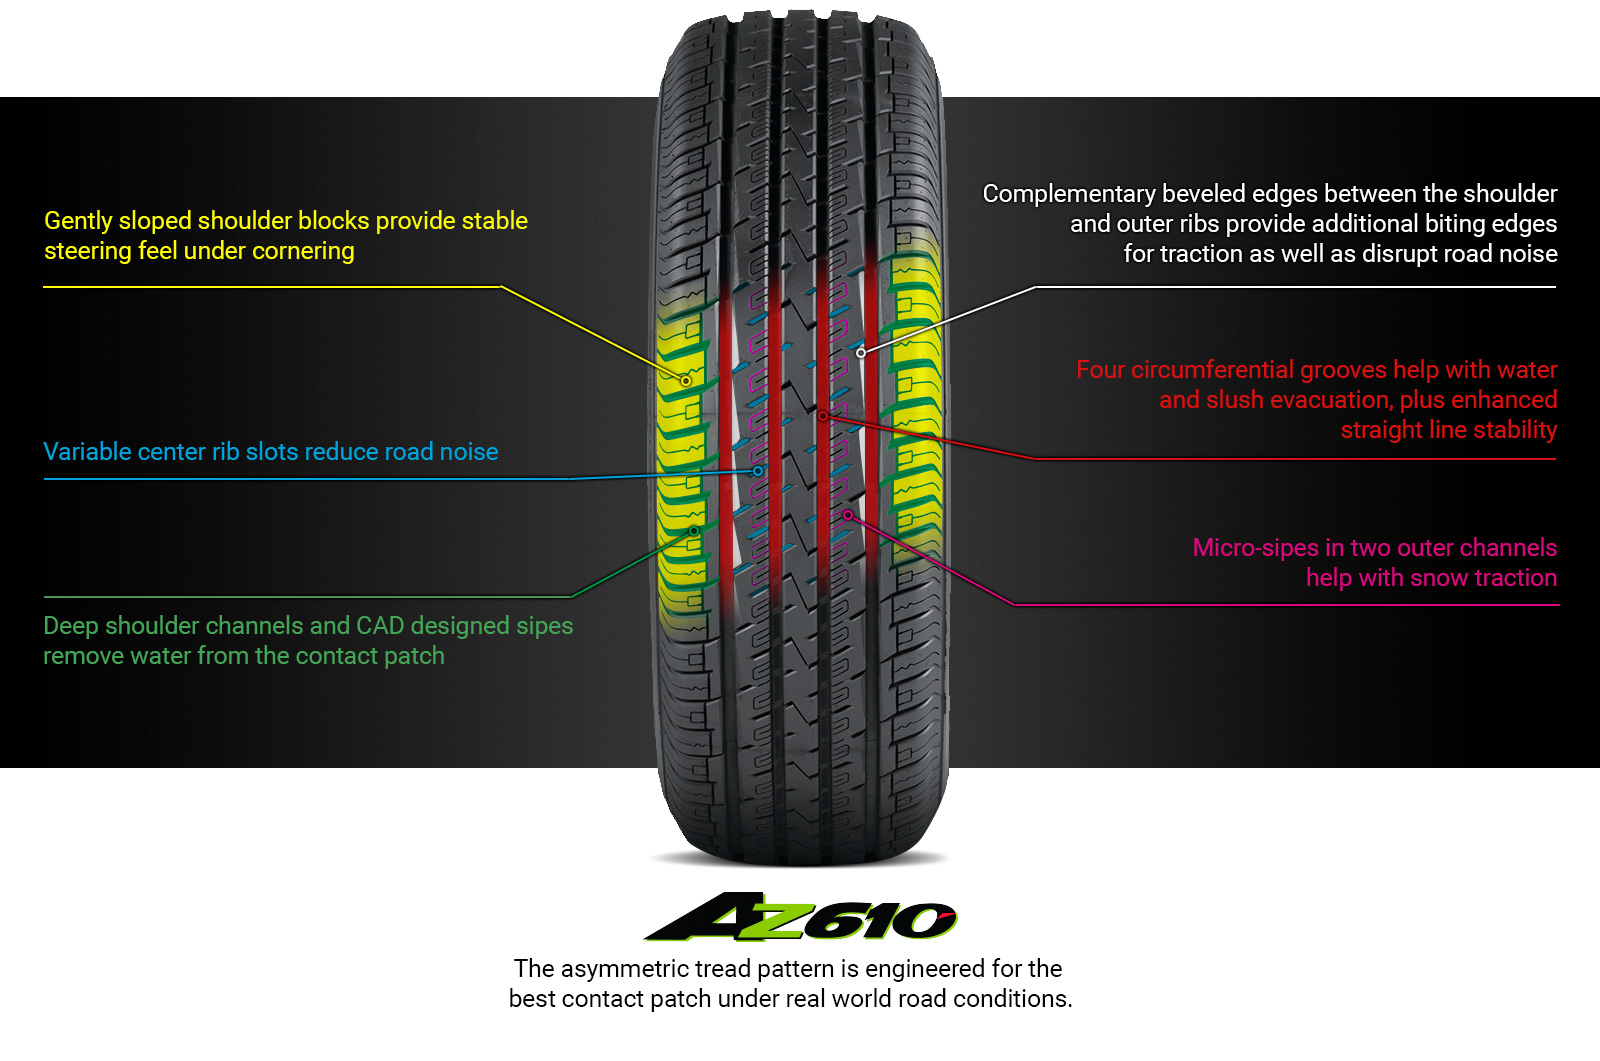 AZ610 Tire Technology